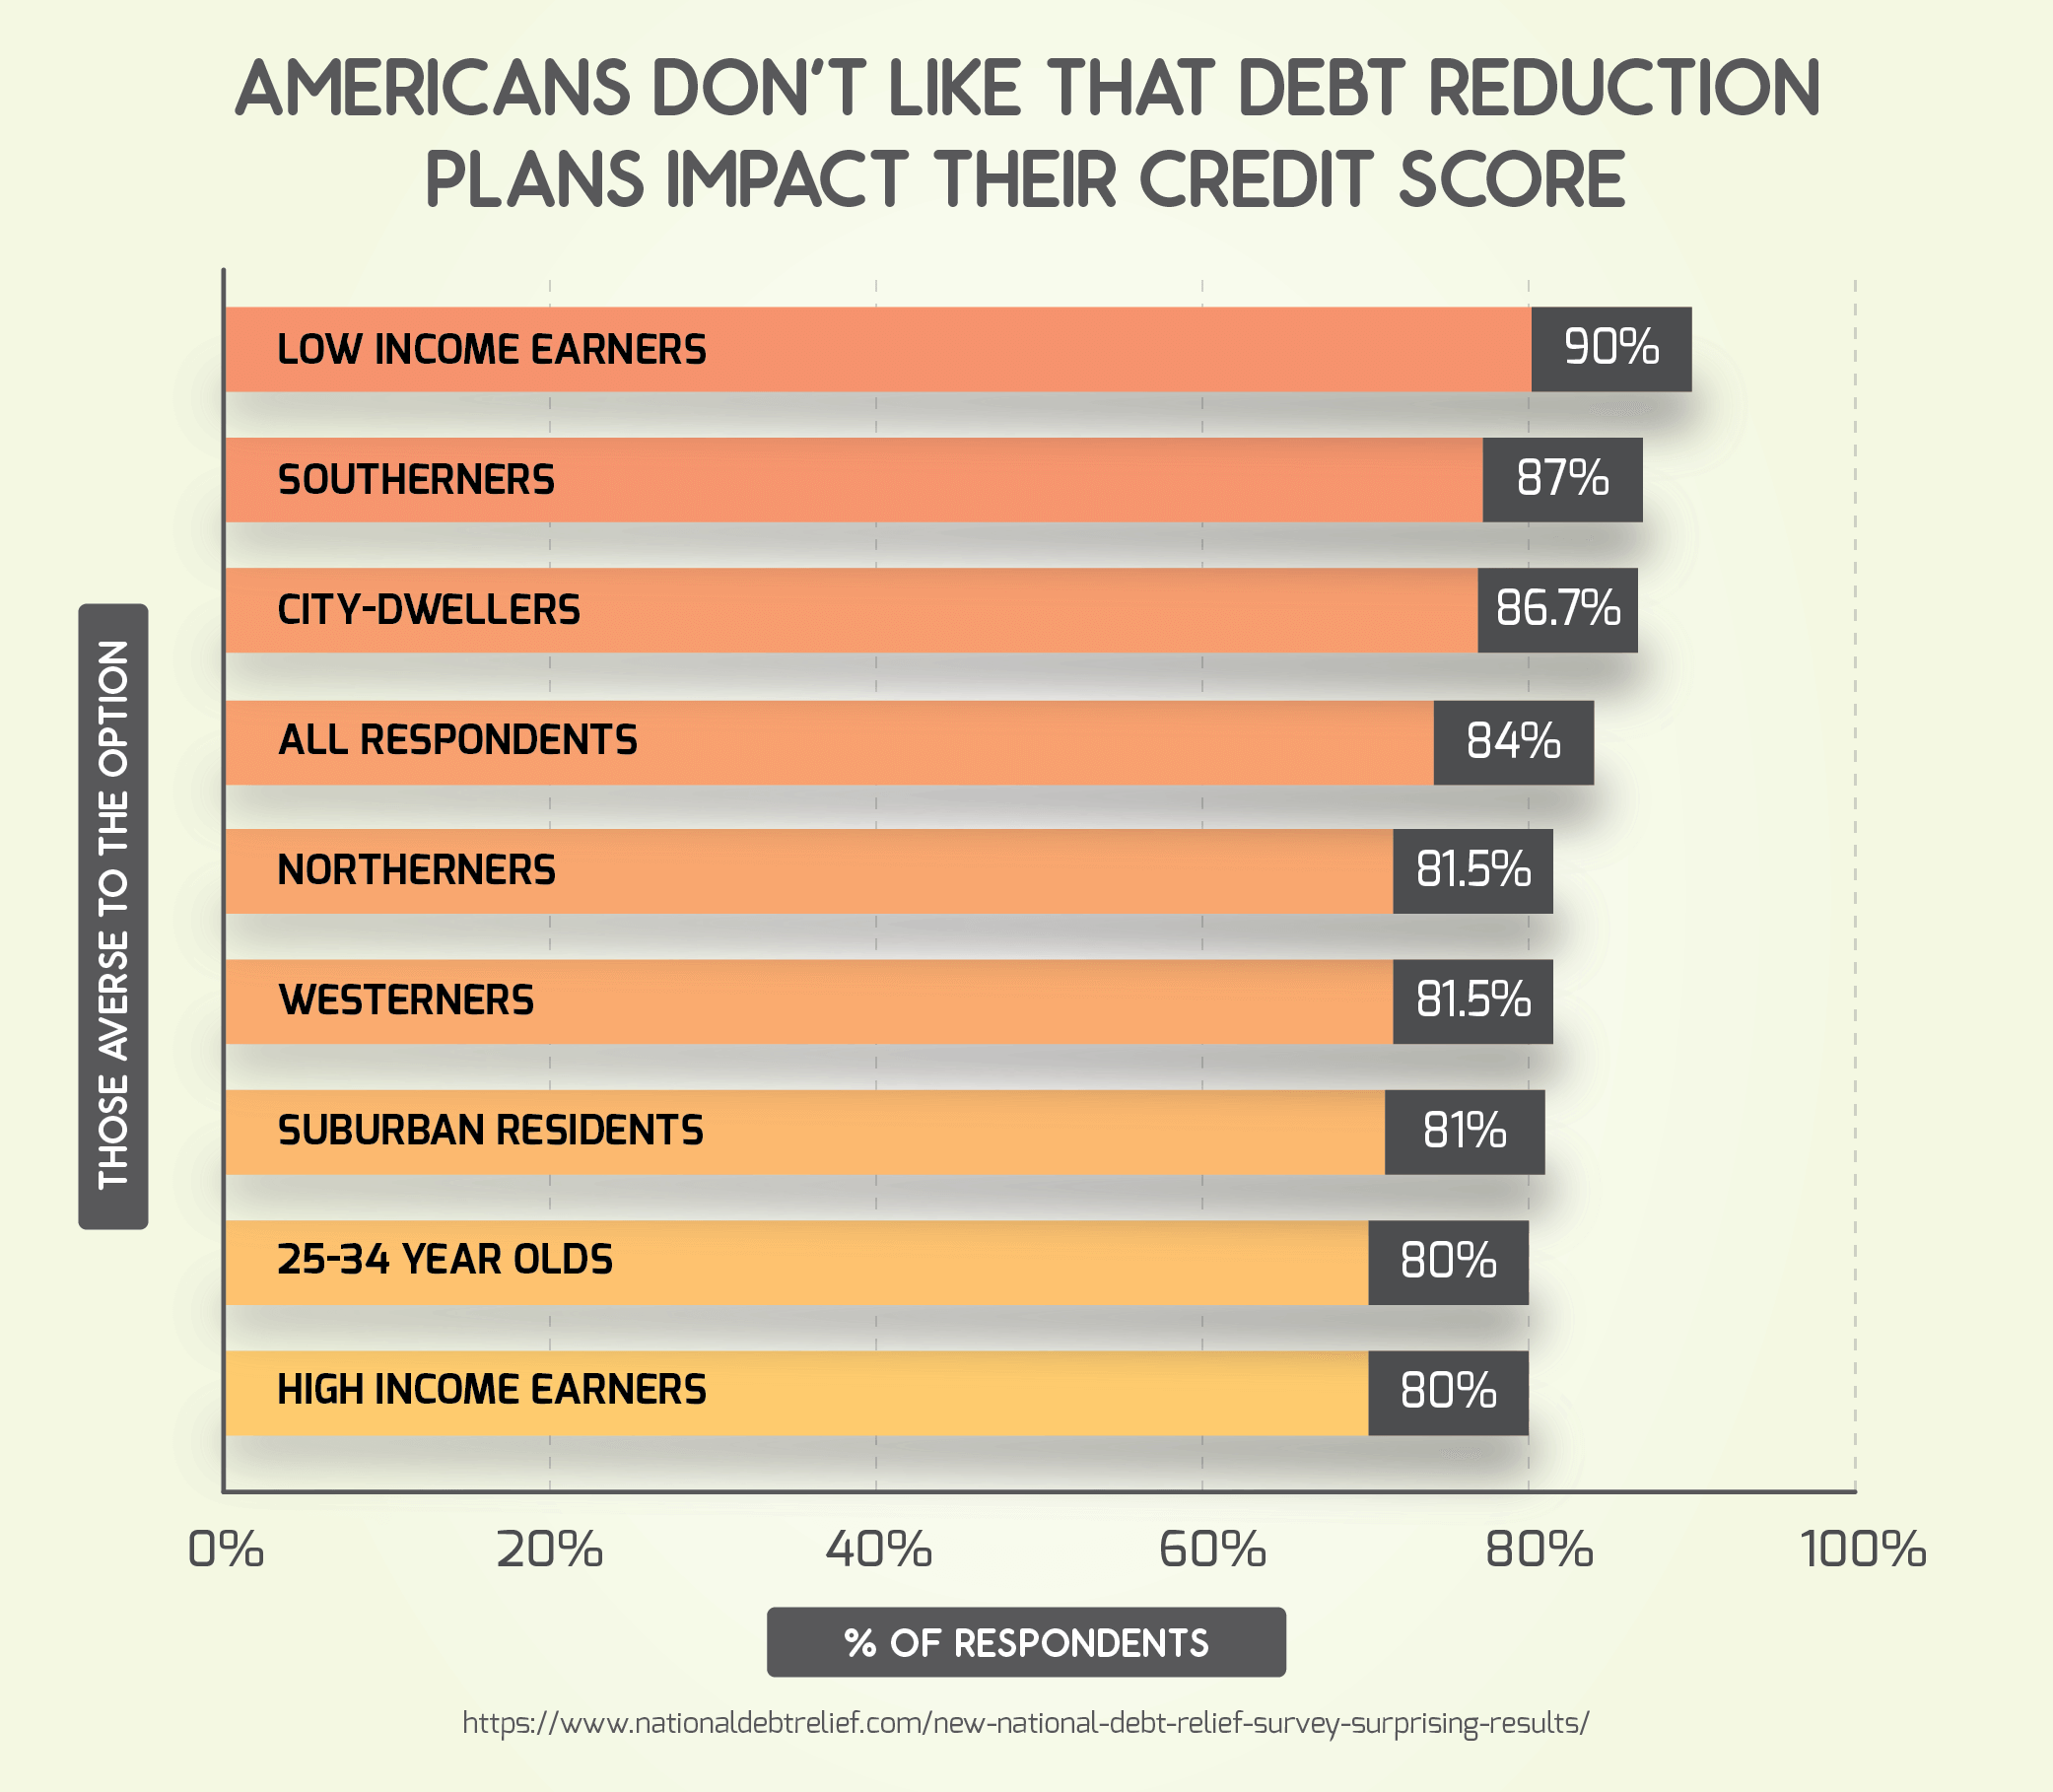 Americans Don't Like That Debt Reduction Plans Impact Their Credit Score